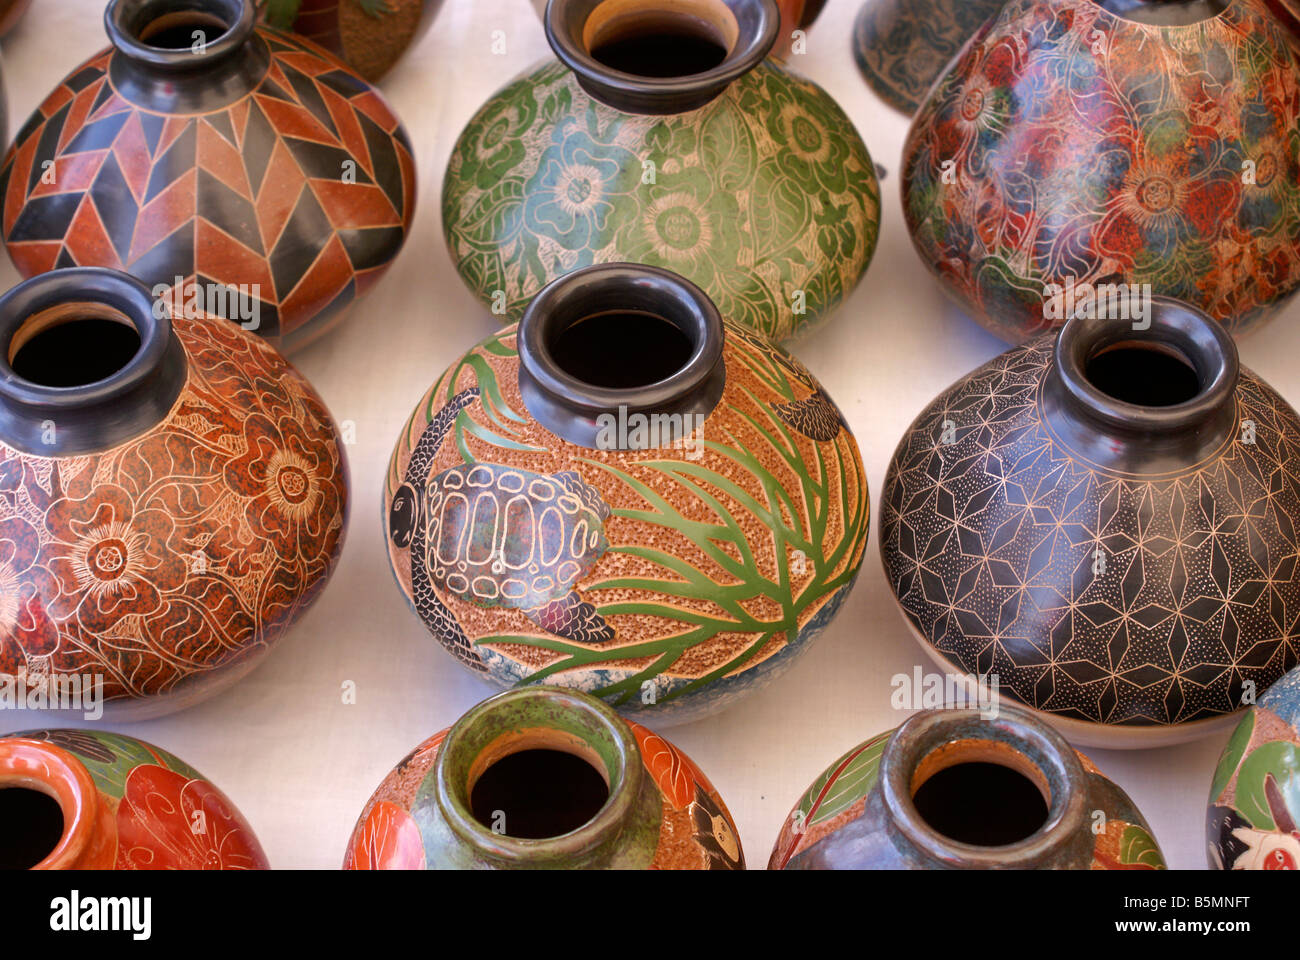 Pottery from San Juan de Oriente in the Pueblos Blancos or White Towns, Nicaragua - Stock Image